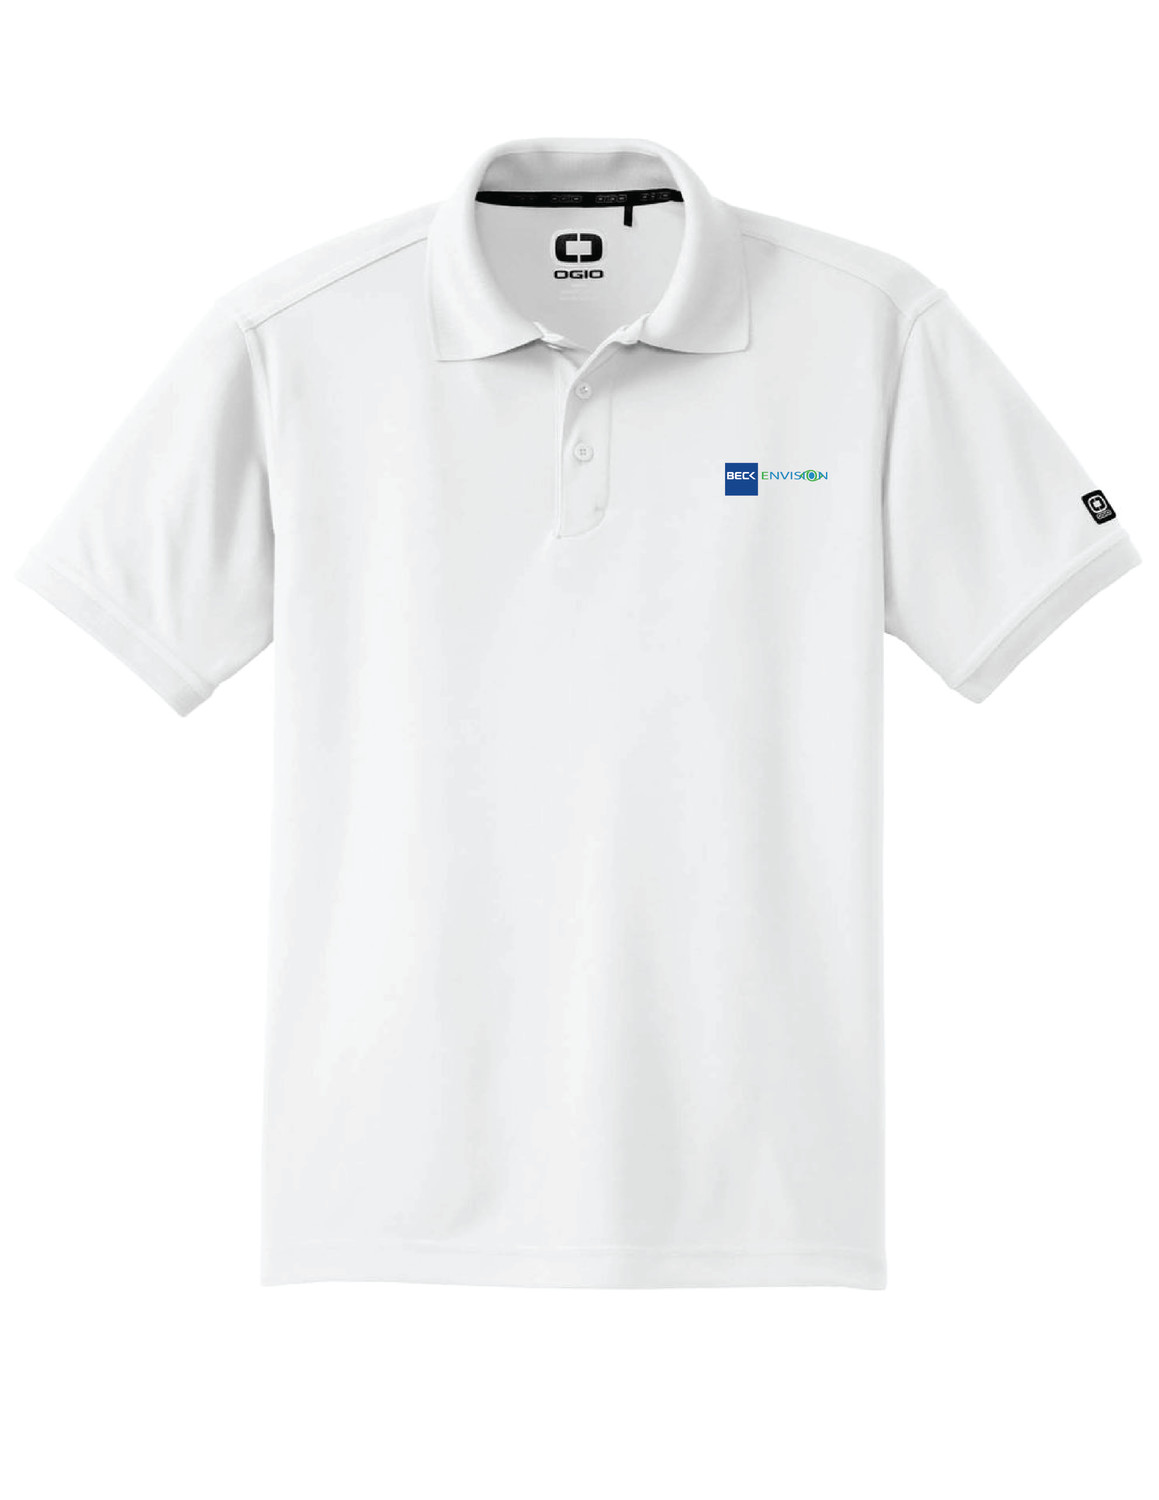 Beck-Envision Men's Polo: OG101(EB) OGIO Men's Caliber 2.0 Polo